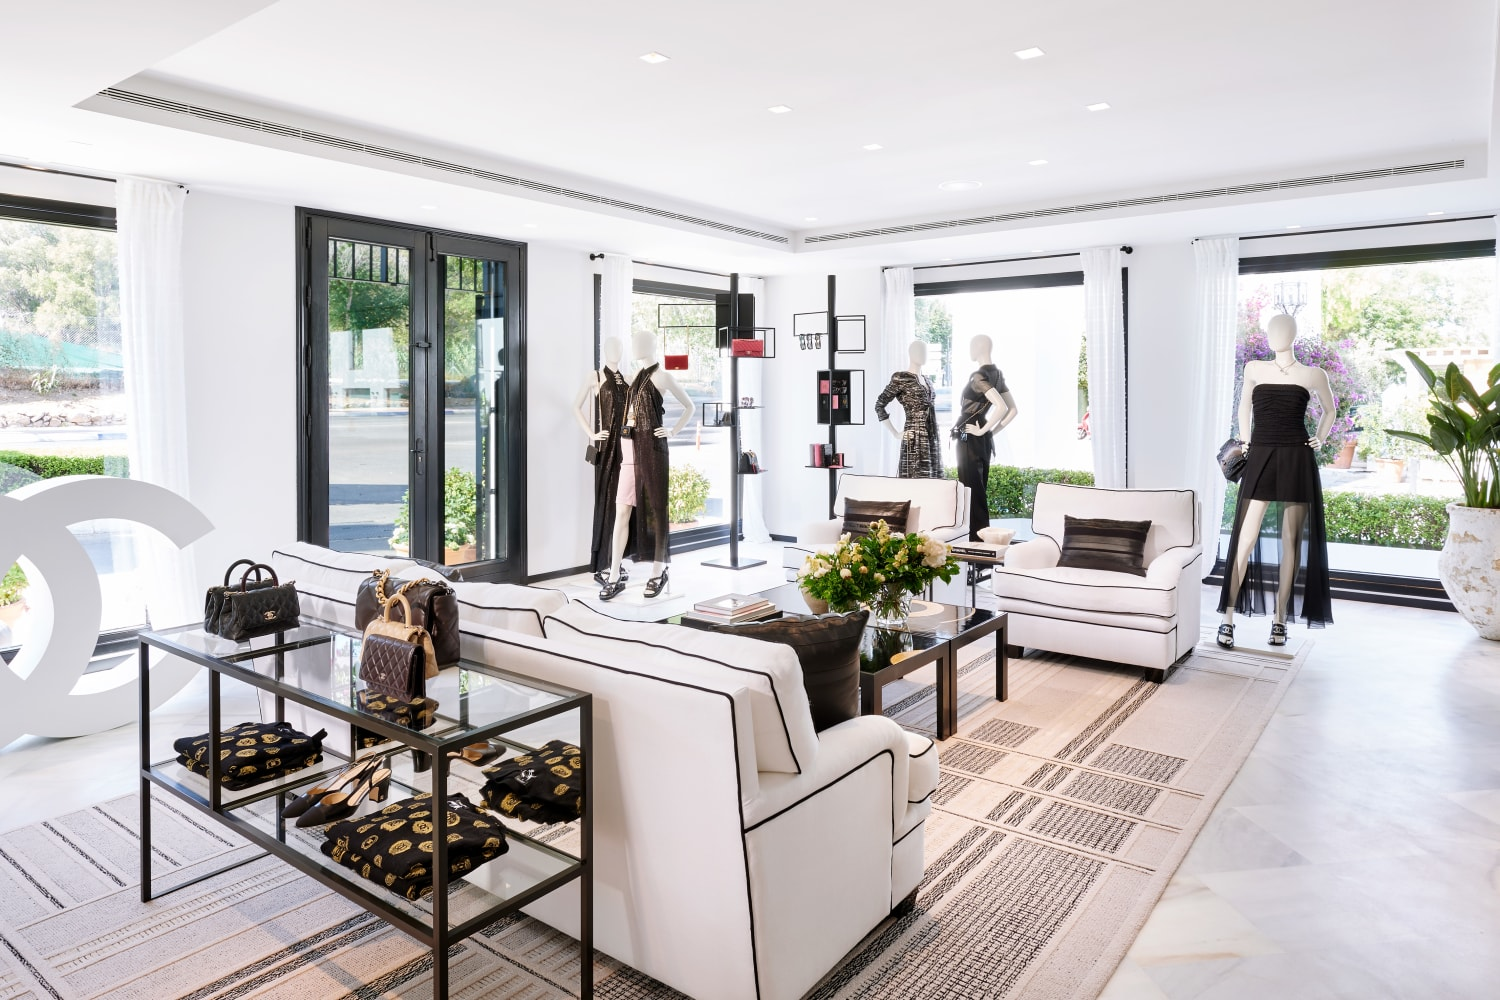 chanel_marbella-ephemeral-boutique-2021-pictures-by-olivier-saillant